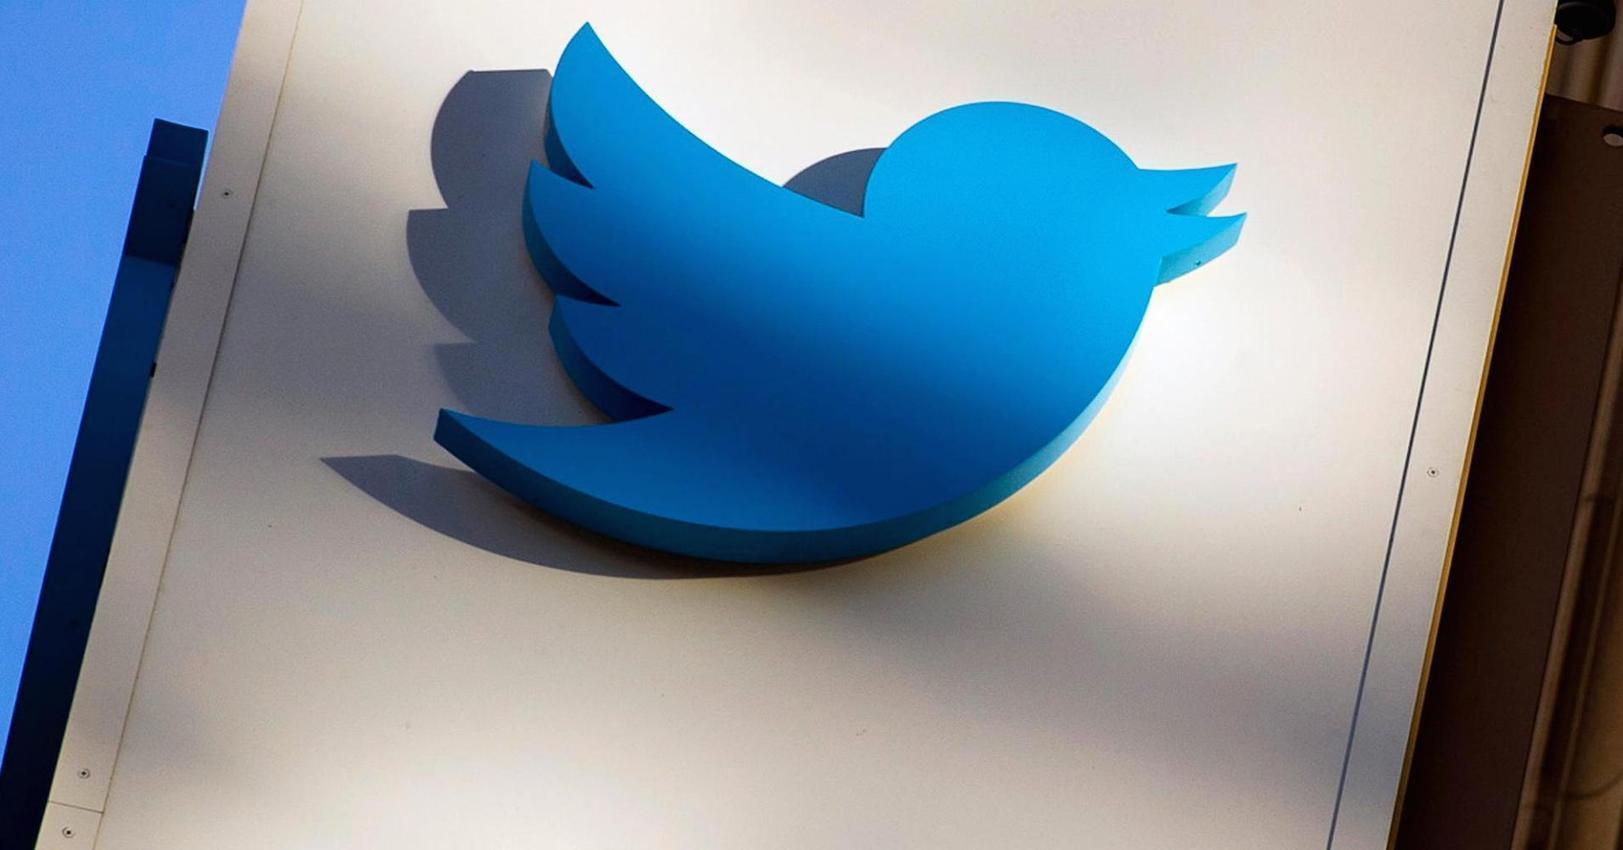 Russian regulator threatens to block Twitter